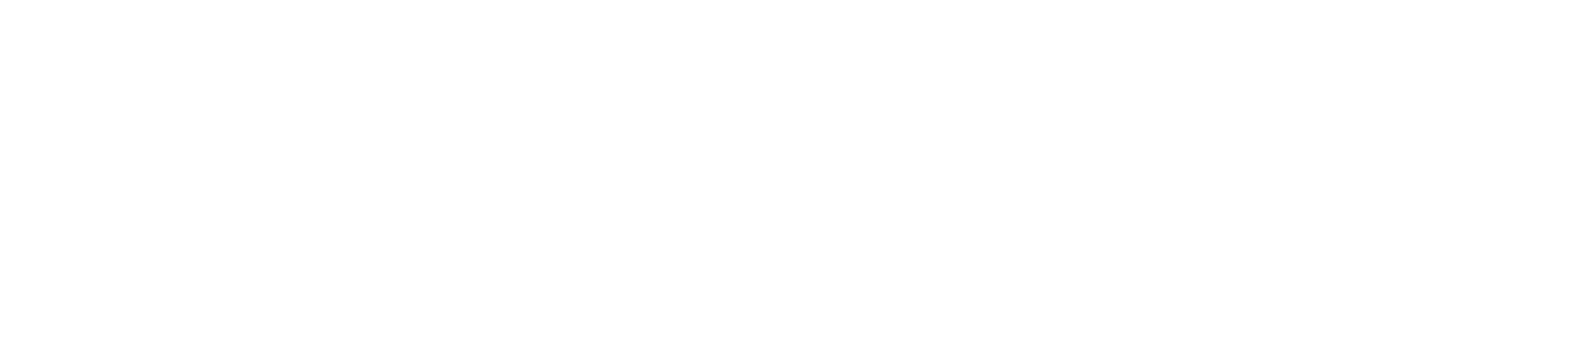 Bogey Hills Golf Academy and Performance Institute in Saint Charles